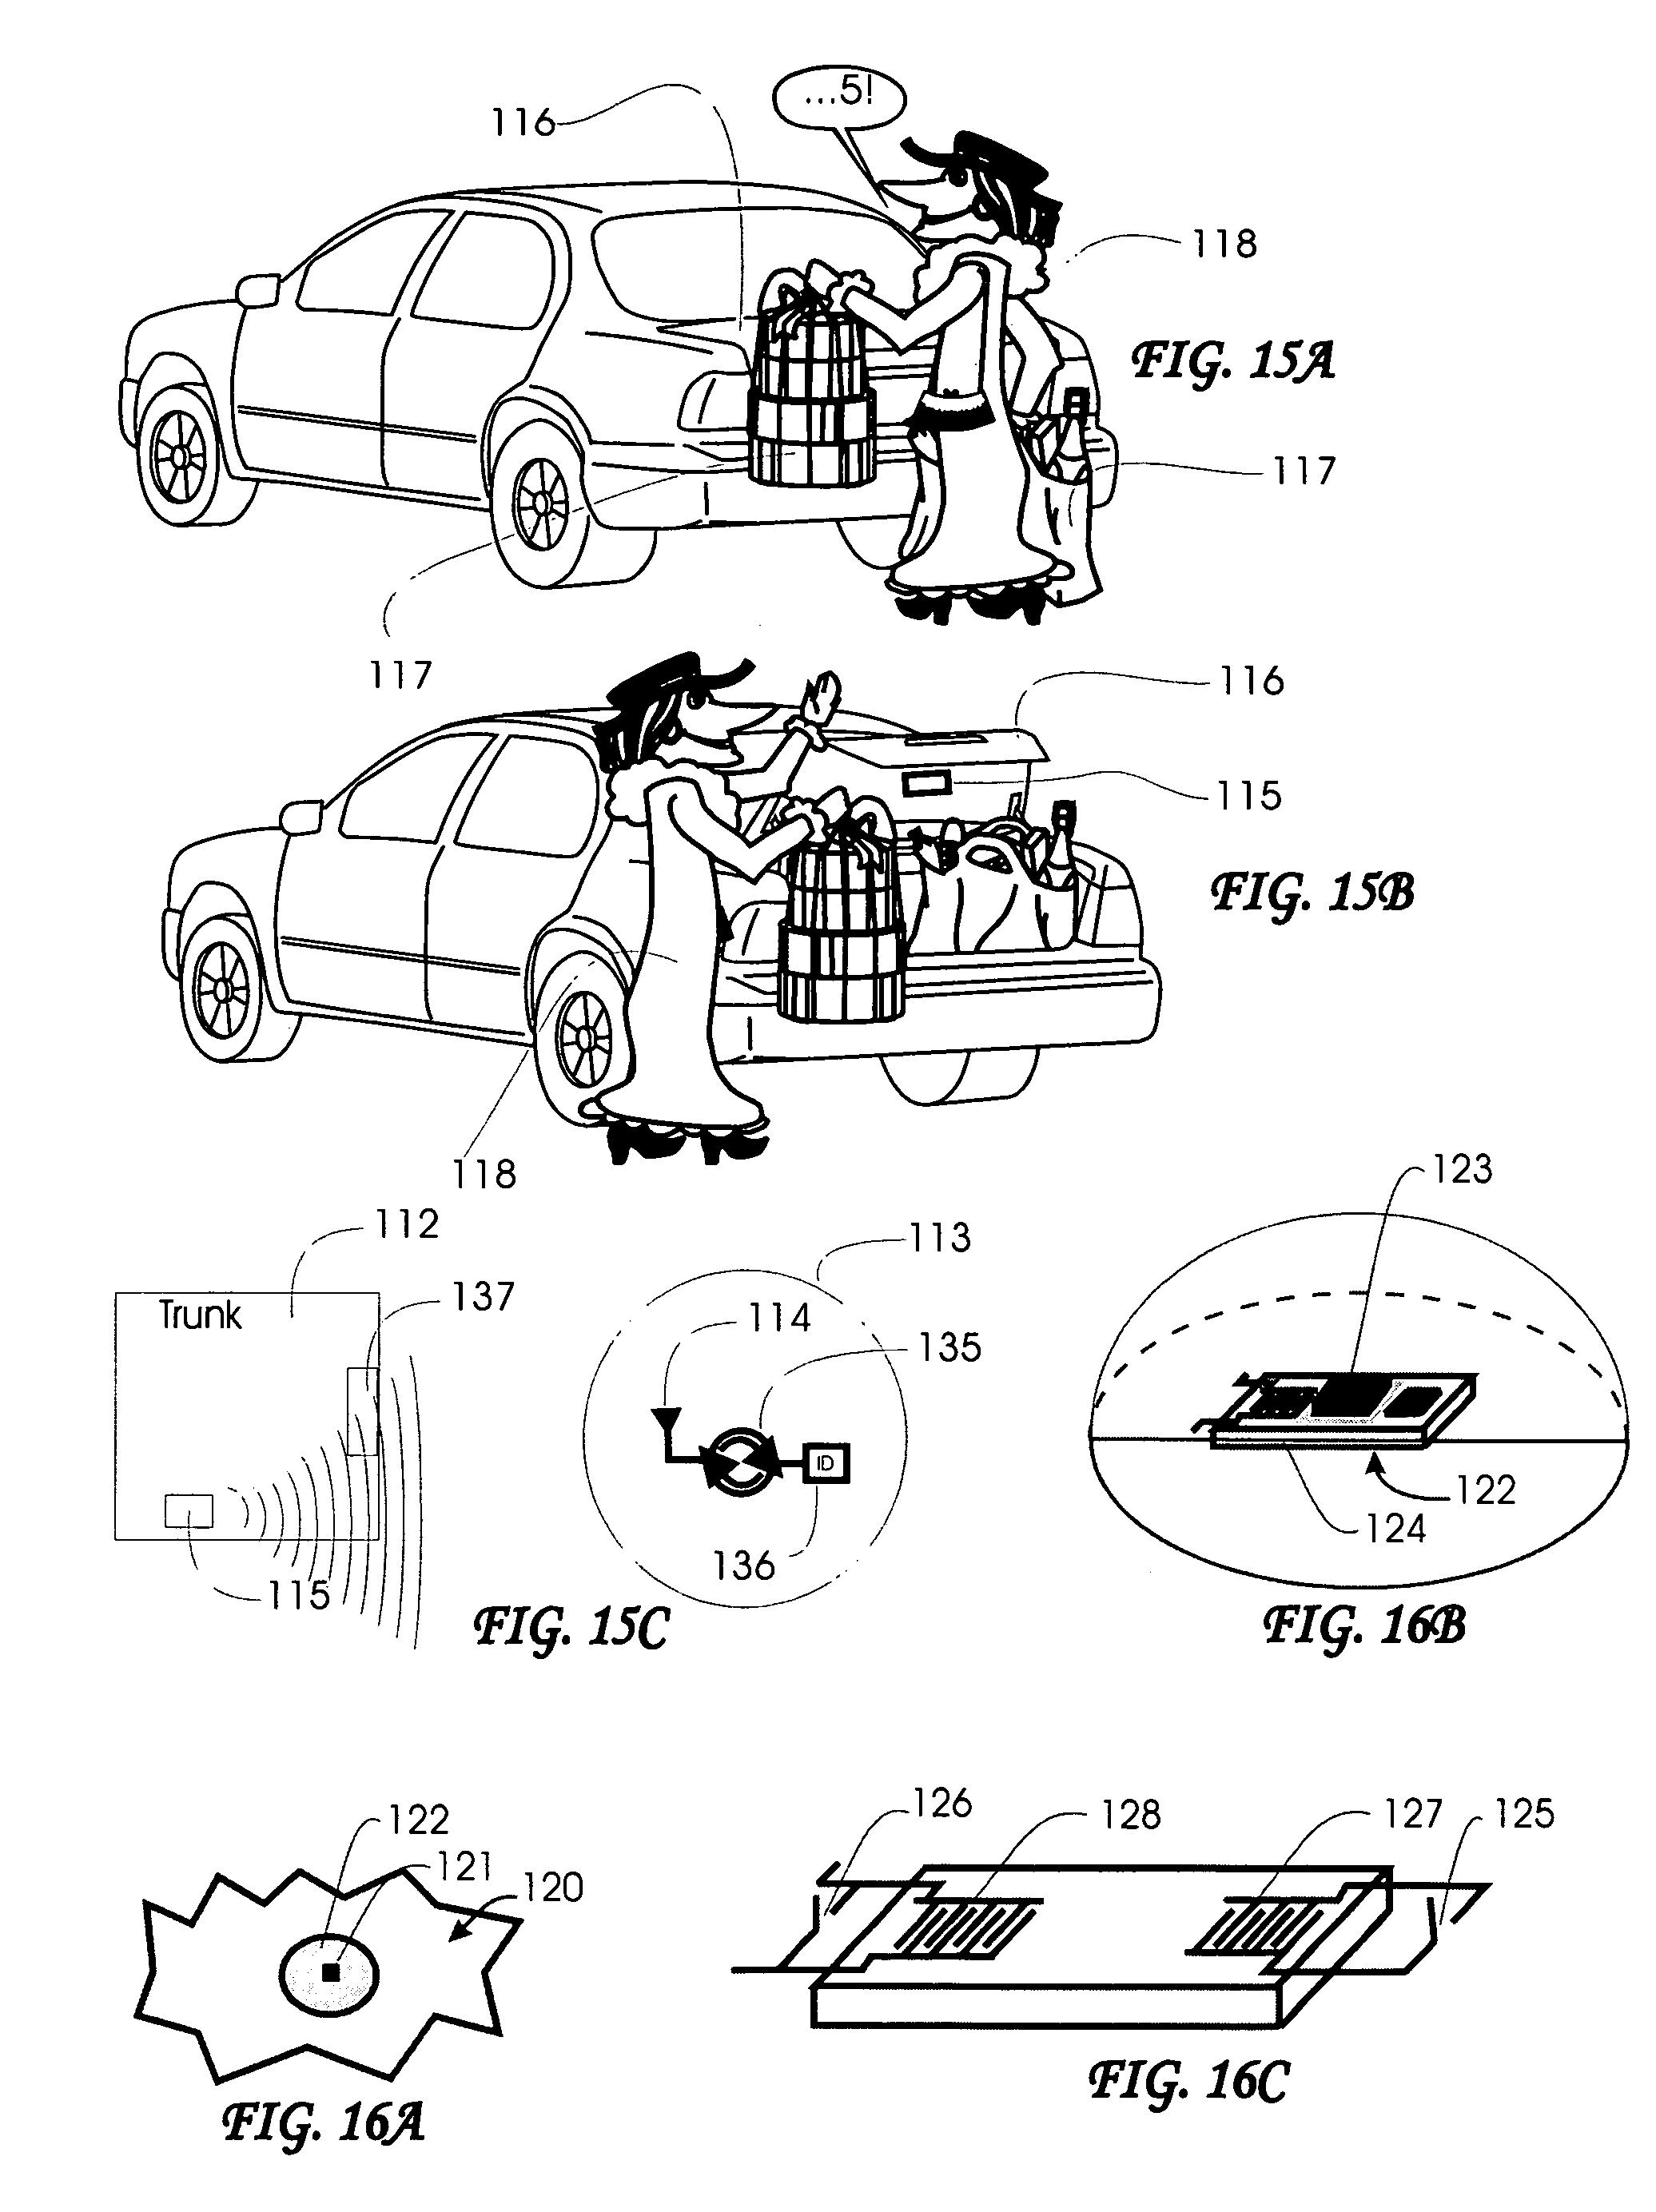 patent us 7 103 460 b1 Ford Keyless Entry Code Location patent